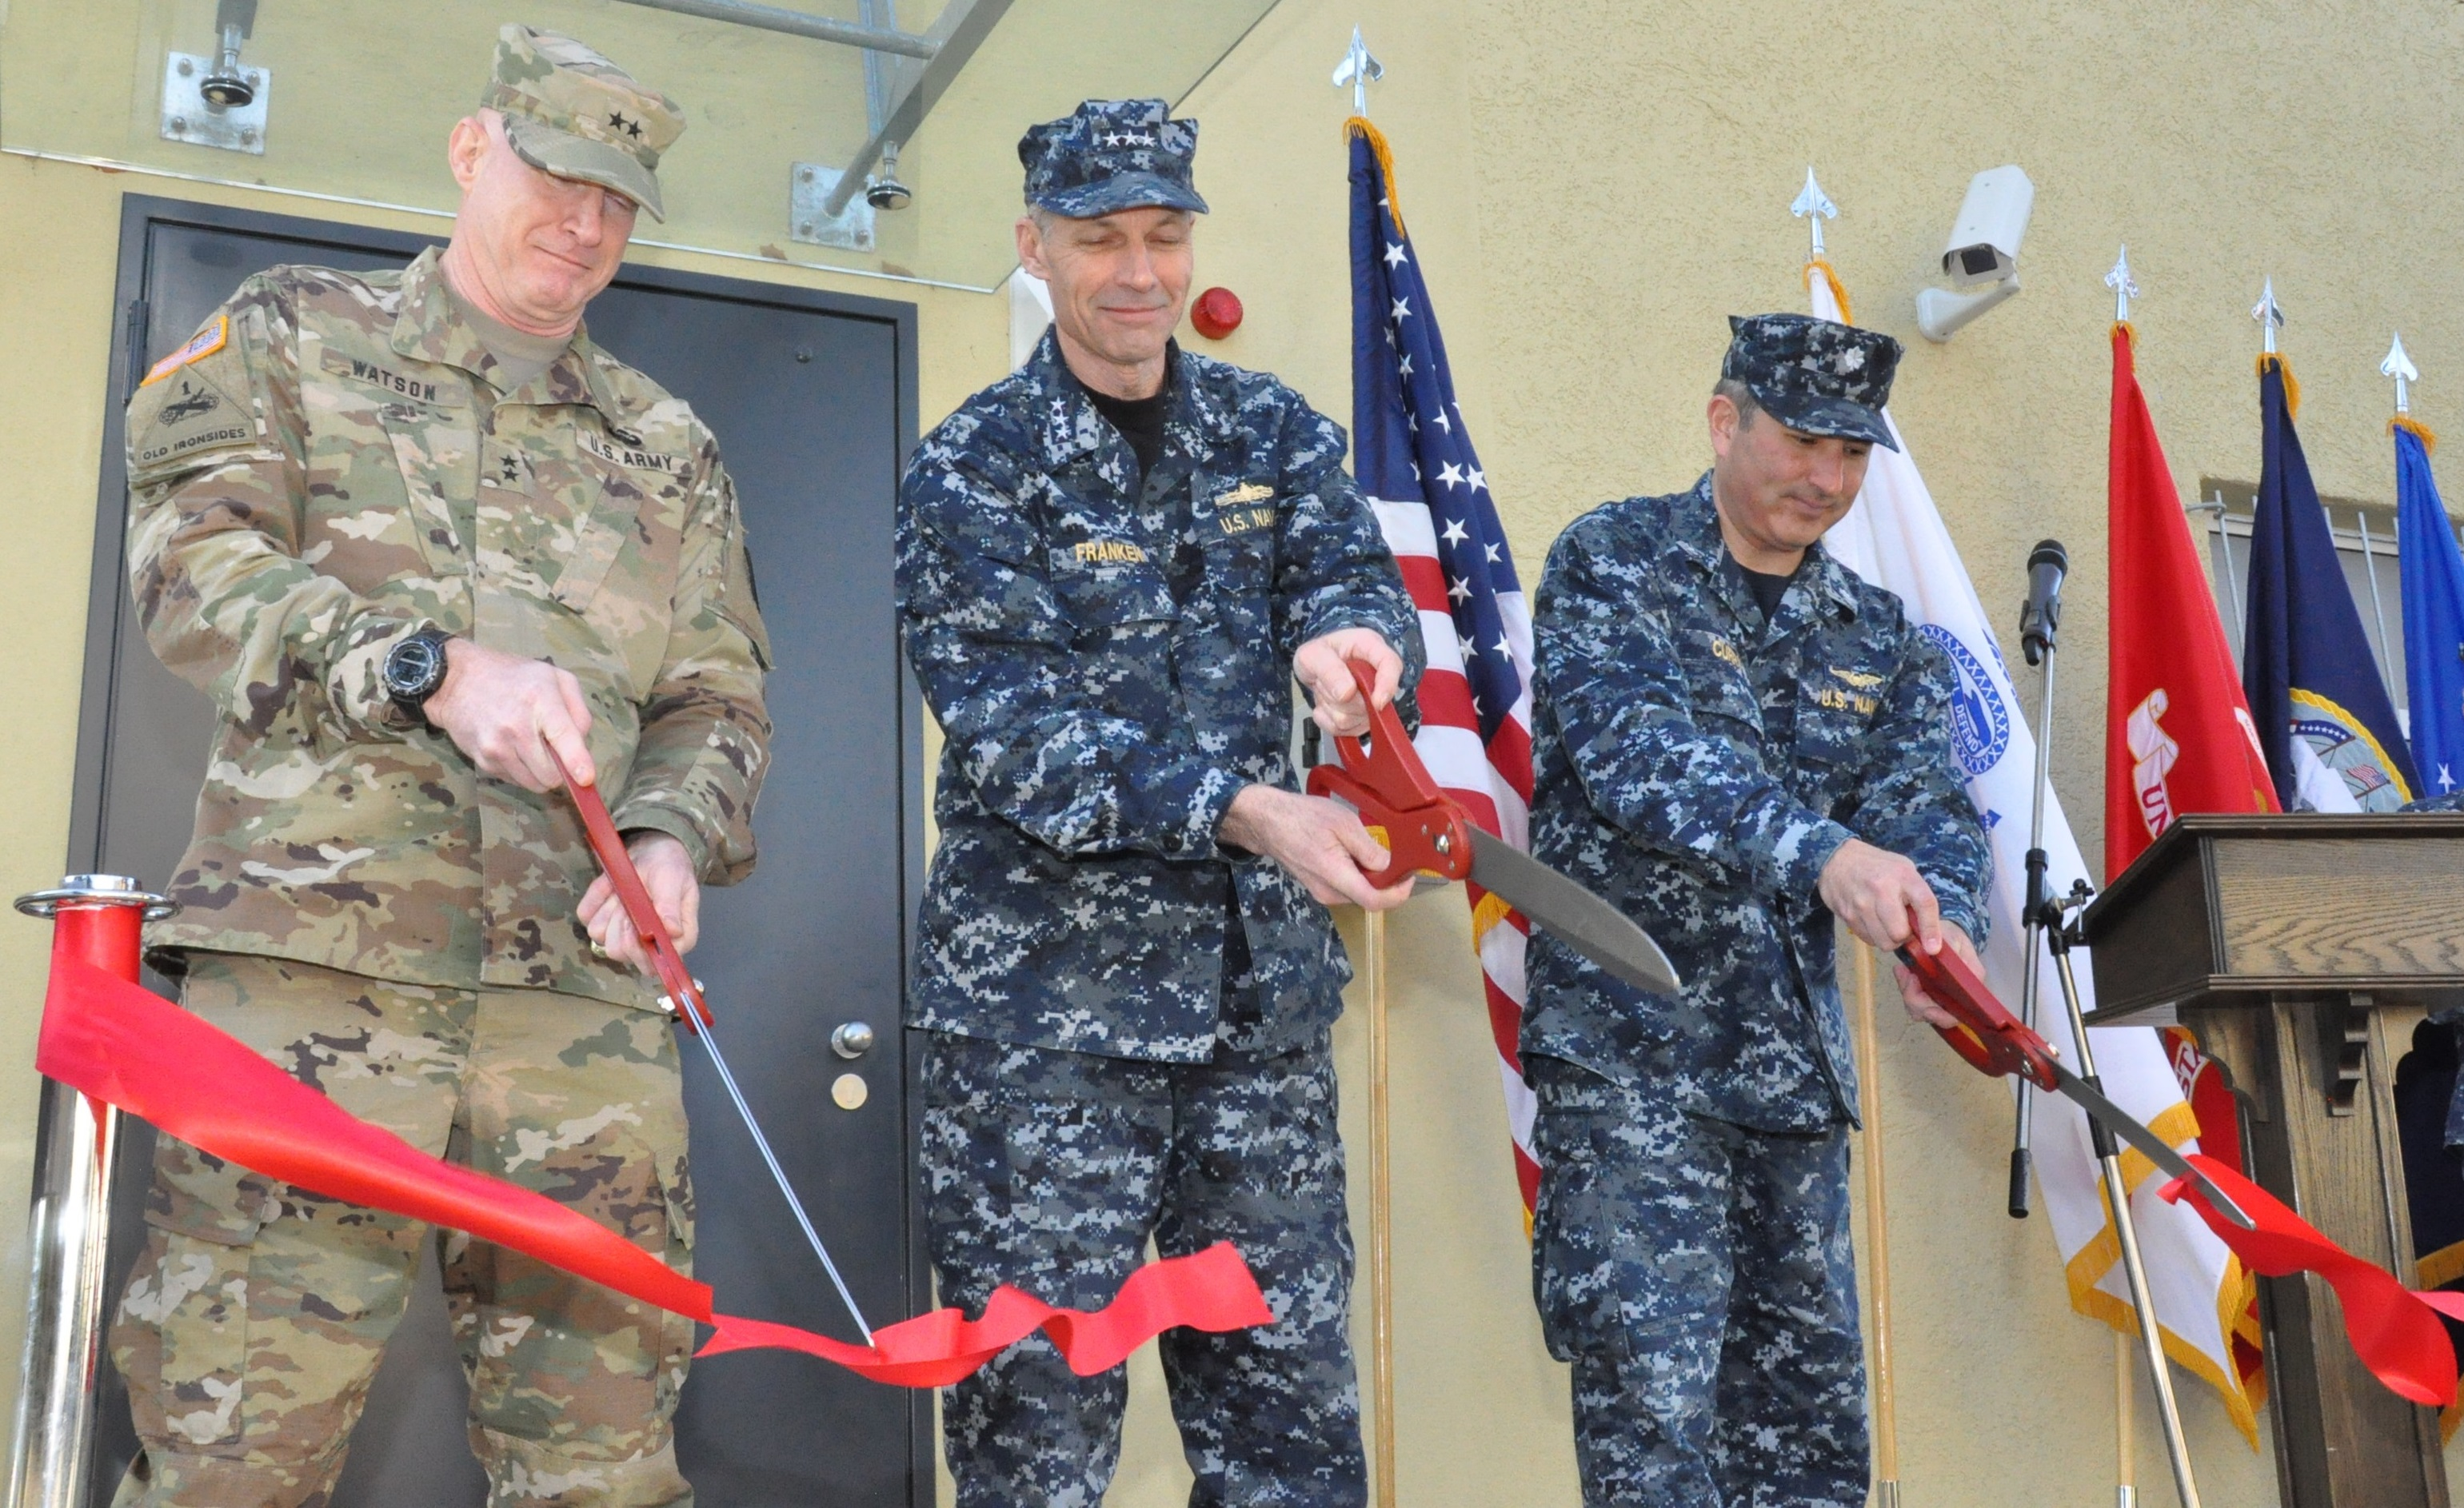 Ribbon cutting – (l-r) AFRICOM's Director of Operations (J3), U.S. Army Maj. Gen. Bryan Watson, Deputy to the Commander for Military Operations, U.S. Navy Vice Adm. Michael Franken, and JOC Chief, U.S. Navy Cdr. Tim Curry, cut the ribbon to an open house event for the new AFRICOM joint operations center, Feb. 5, 2016, U.S. Army Garrison Stuttgart, Germany. (U.S. Africa Command photo by Brenda Law/RELEASED)